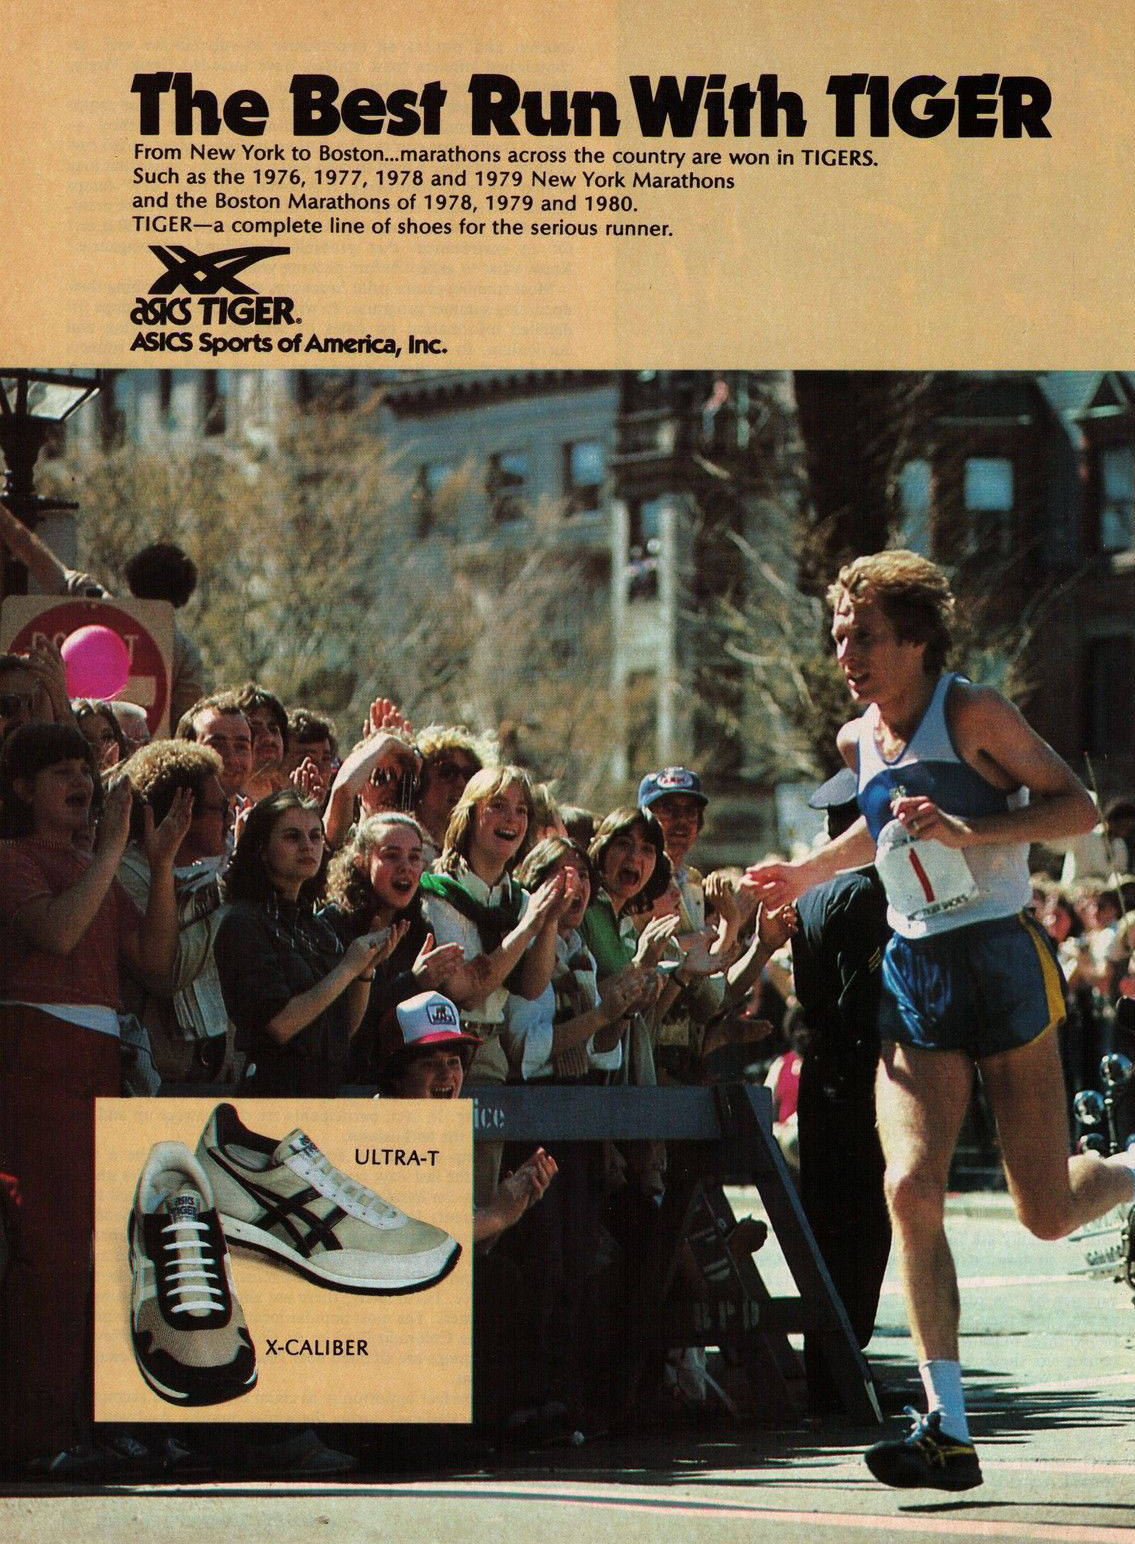 Asics Tiger - 1981 - The Best Run With Tiger